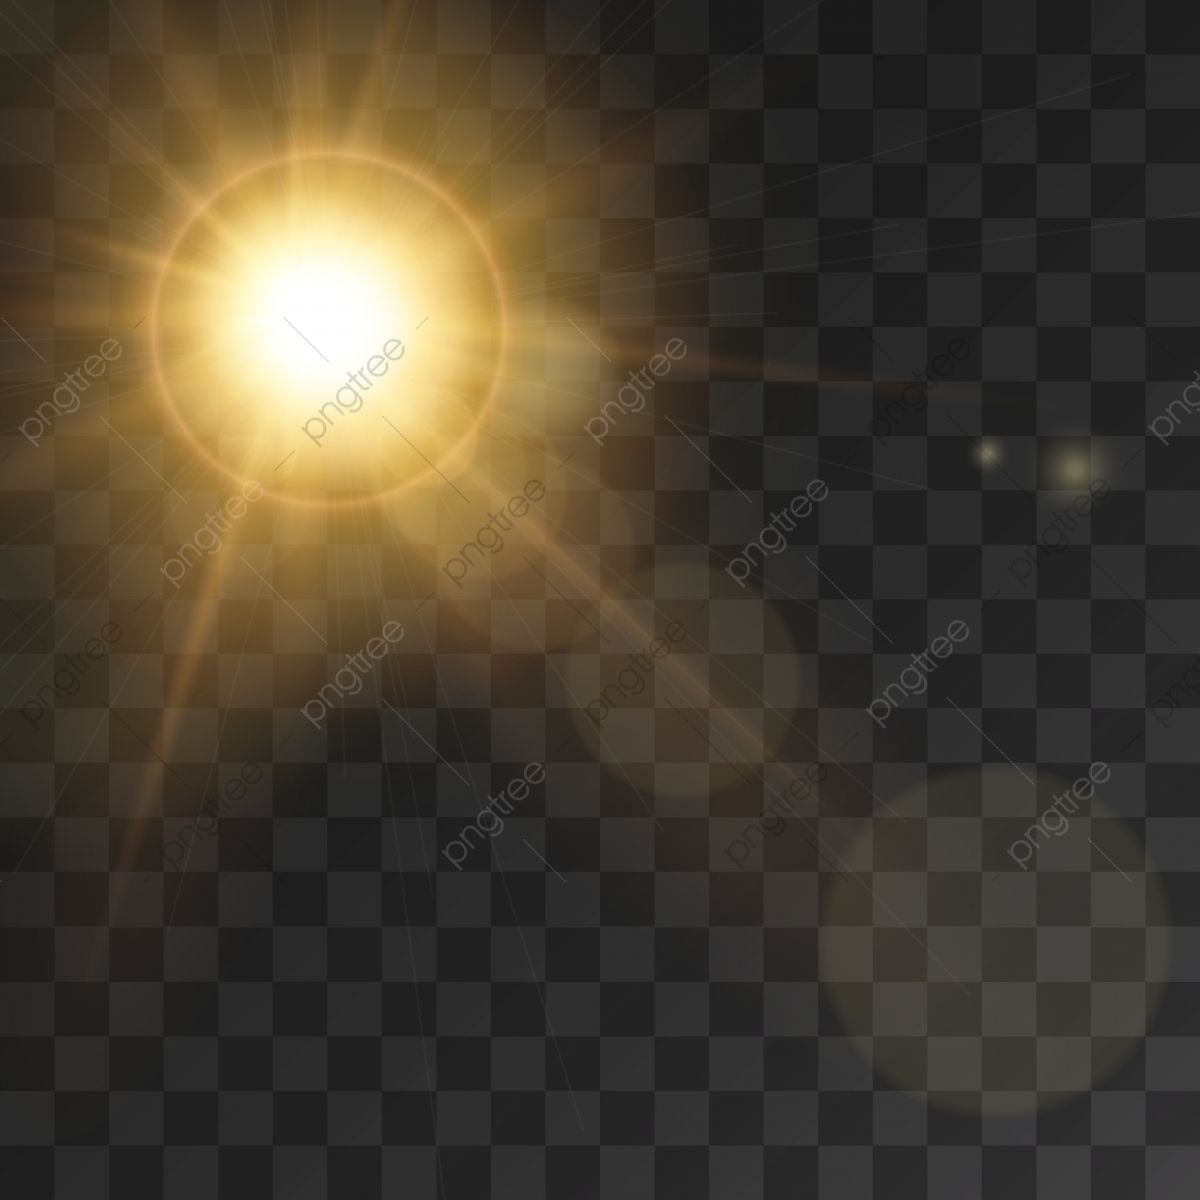 Sunlight Rays Effect With Lens Flare Effect Illustration Background Light Vector Png And Vector With Transparent Background For Free Download Lens Flare Effect Lens Flare Lense Flare